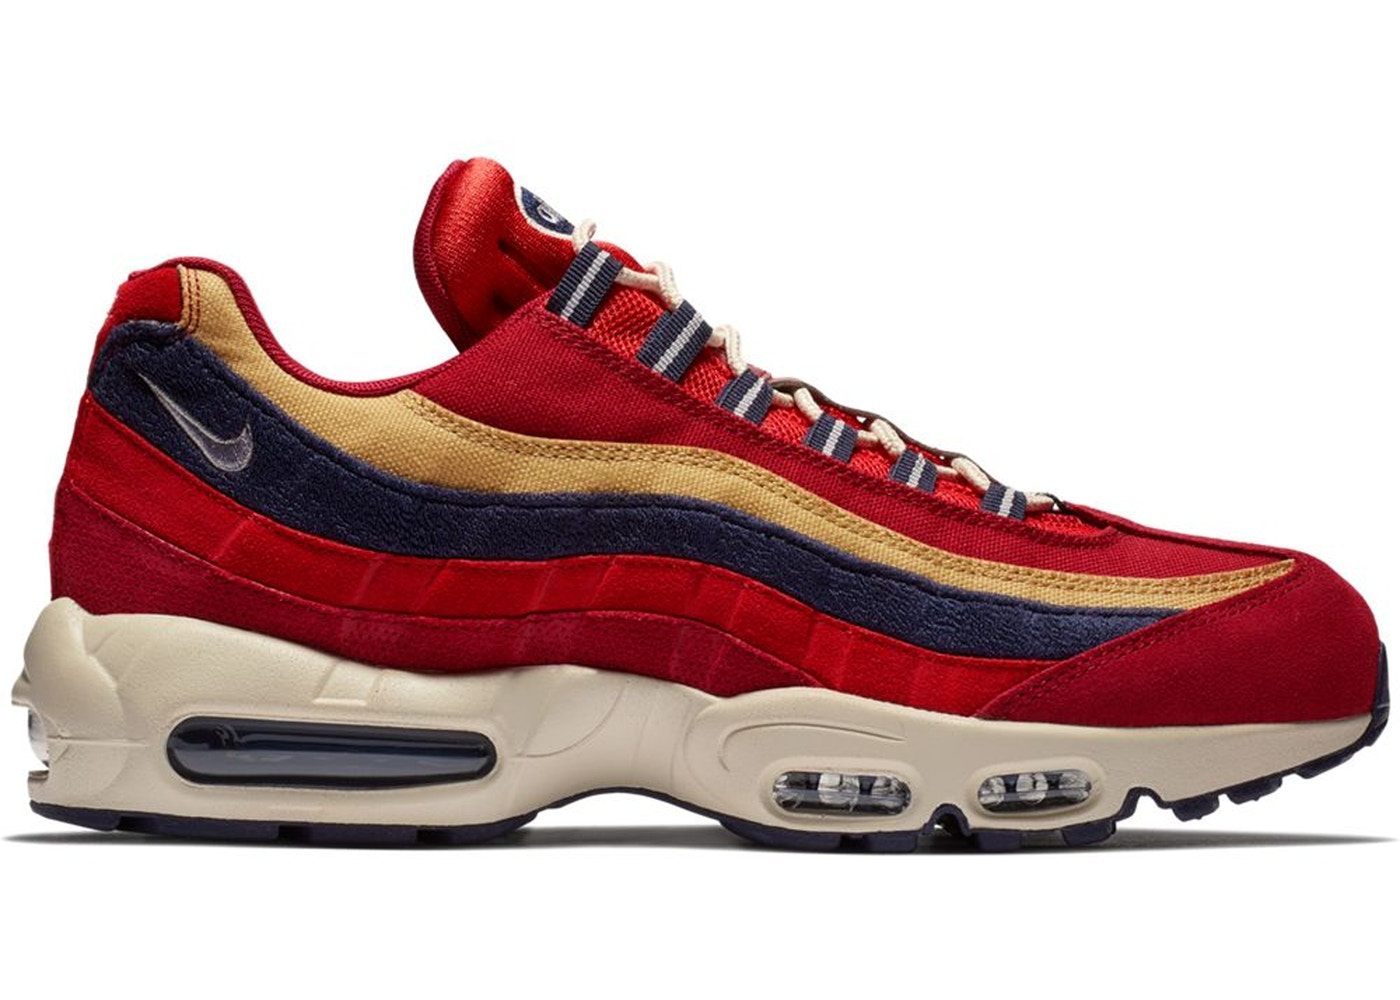 wholesale dealer 04bb5 f3aec Buy Nike Air Max 95 Shoes & Deadstock Sneakers